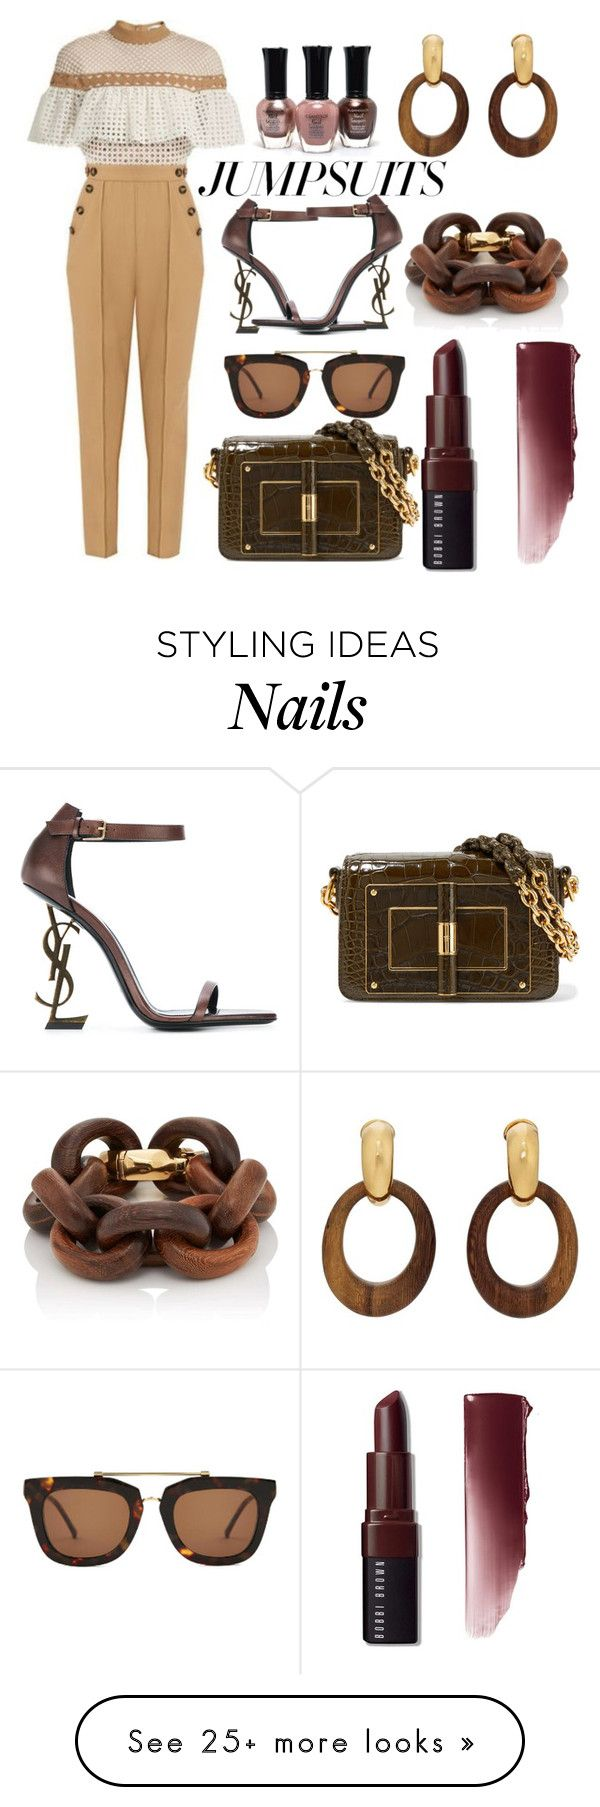 """checkmate"" by esha2232 on Polyvore featuring Tom Ford, Kaibosh, Yves Saint Laurent, Goossens, Bobbi Brown Cosmetics and jumpsuits"